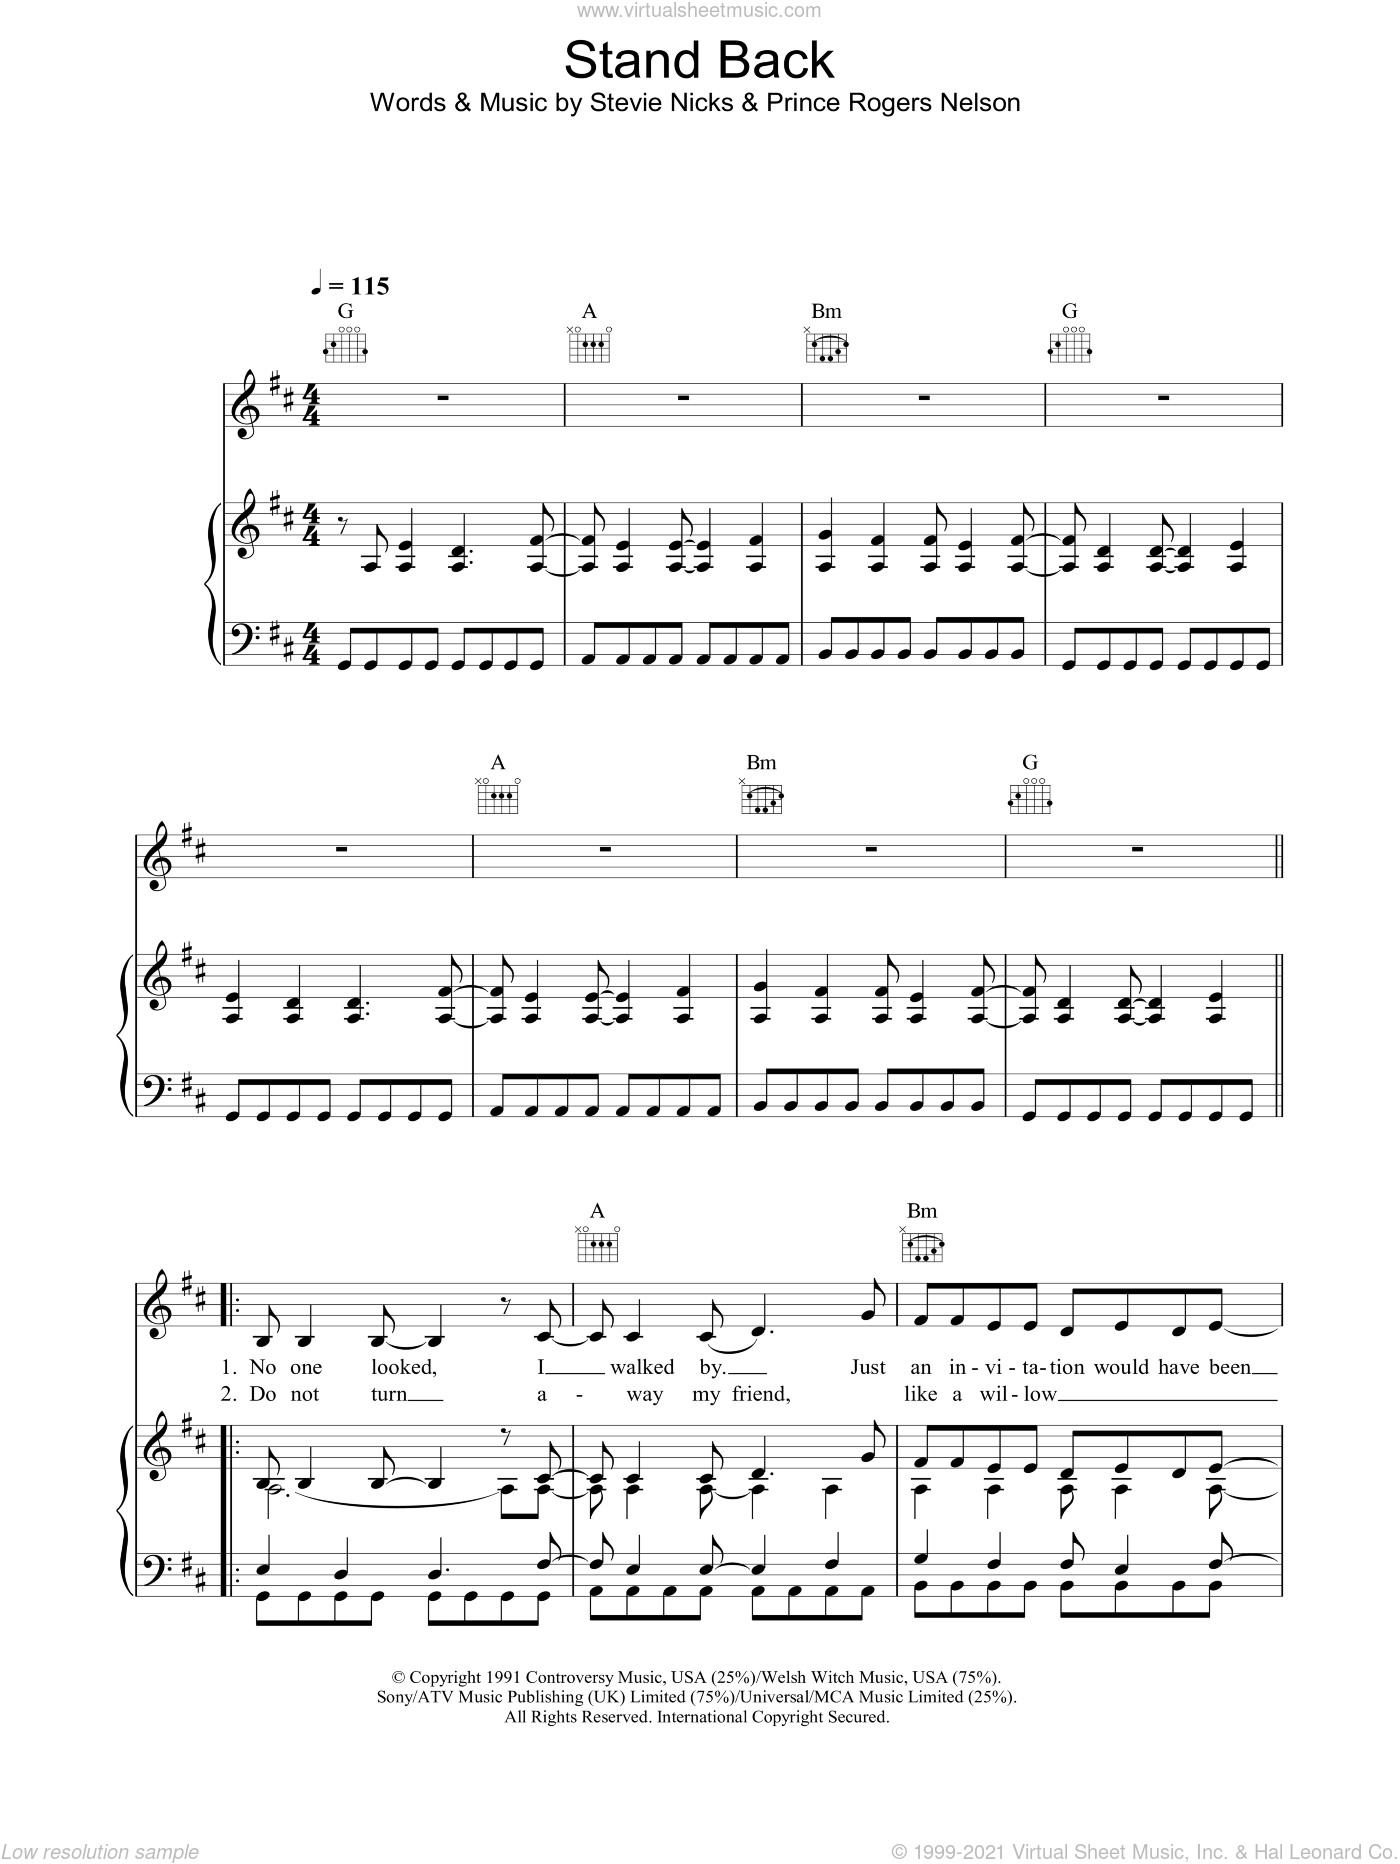 Stand Back sheet music for voice, piano or guitar by Prince Rogers Nelson, Stevie Nicks and Prince. Score Image Preview.